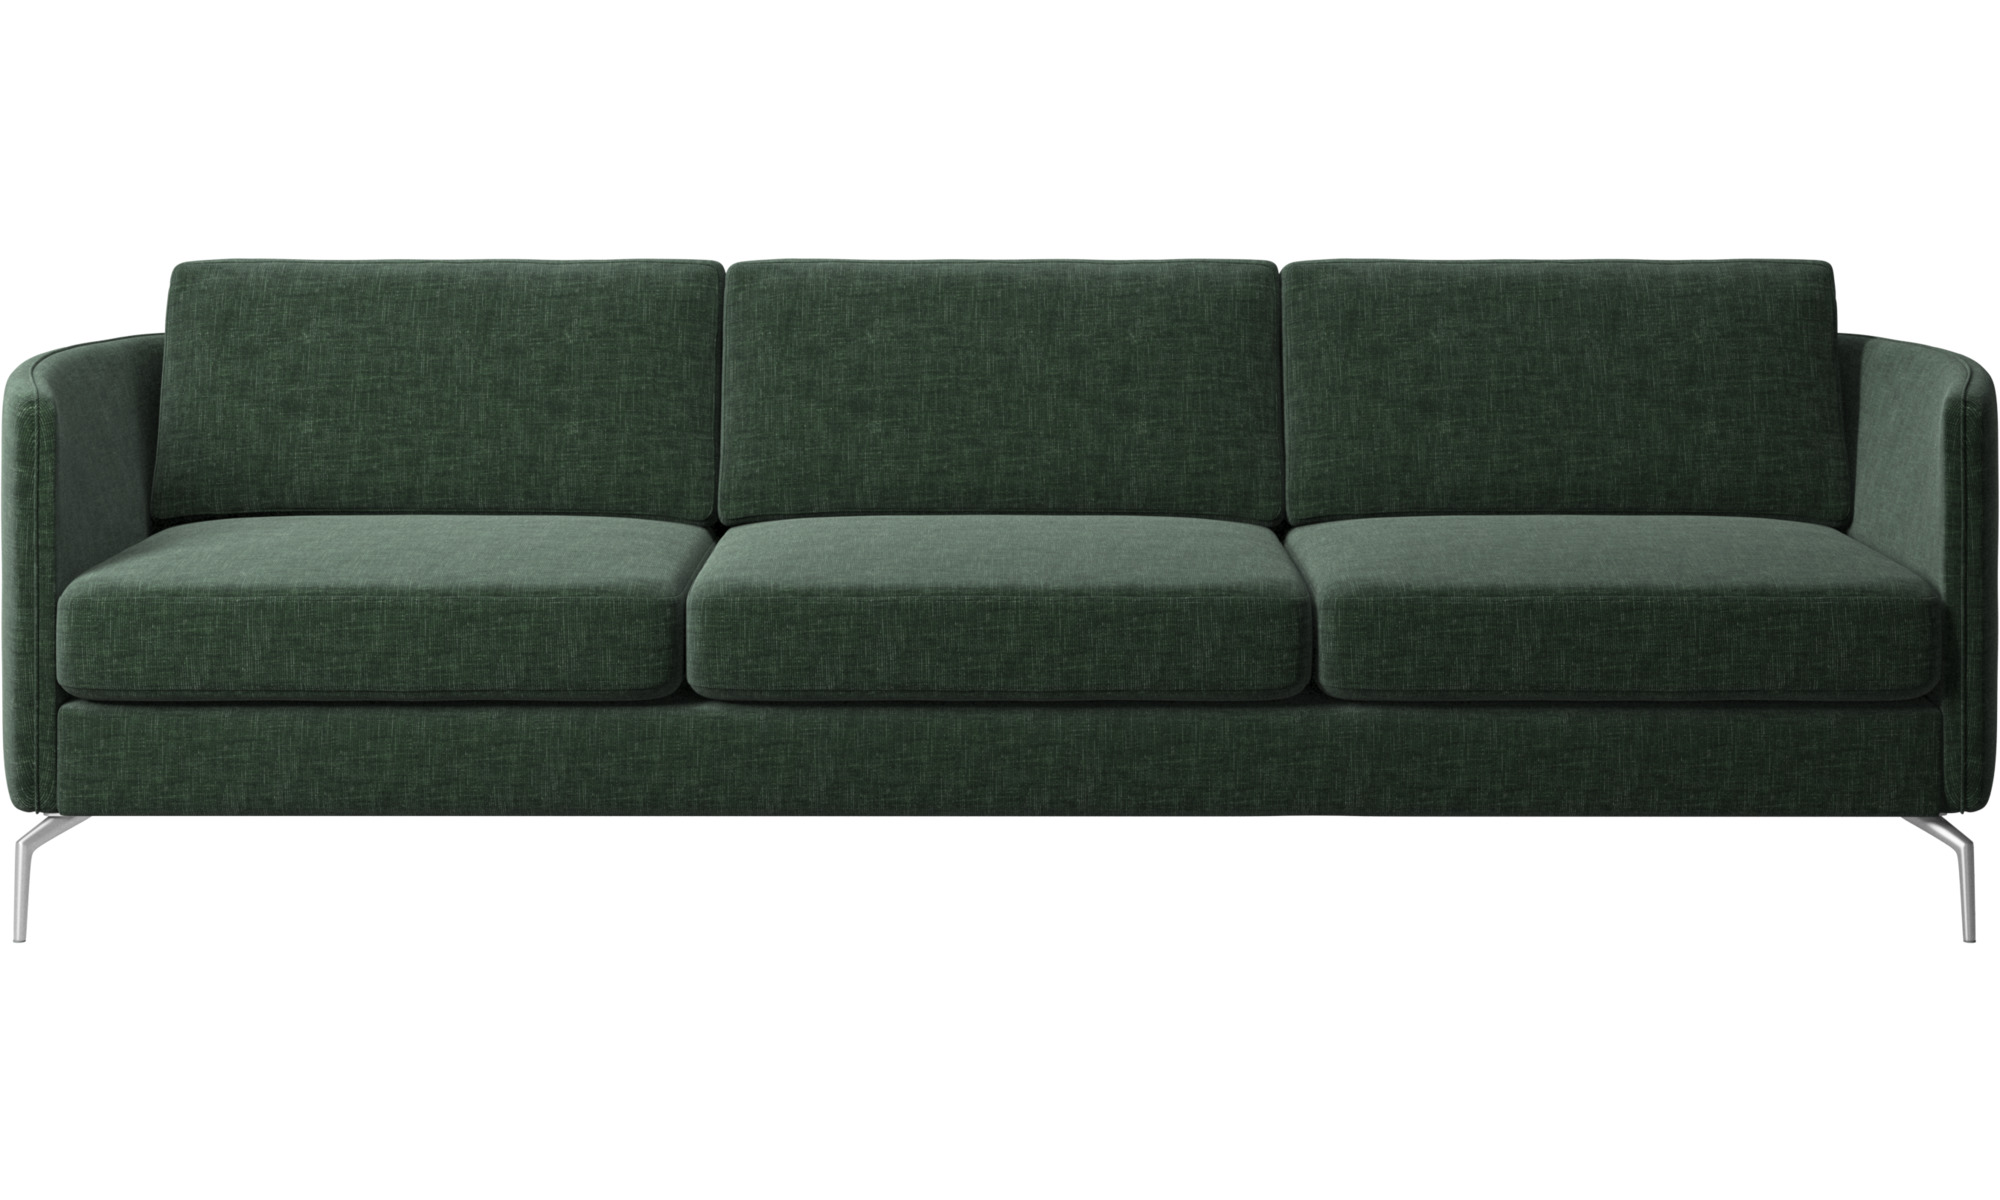 3 sitzer sofas osaka sofa klassische sitzfl che boconcept. Black Bedroom Furniture Sets. Home Design Ideas